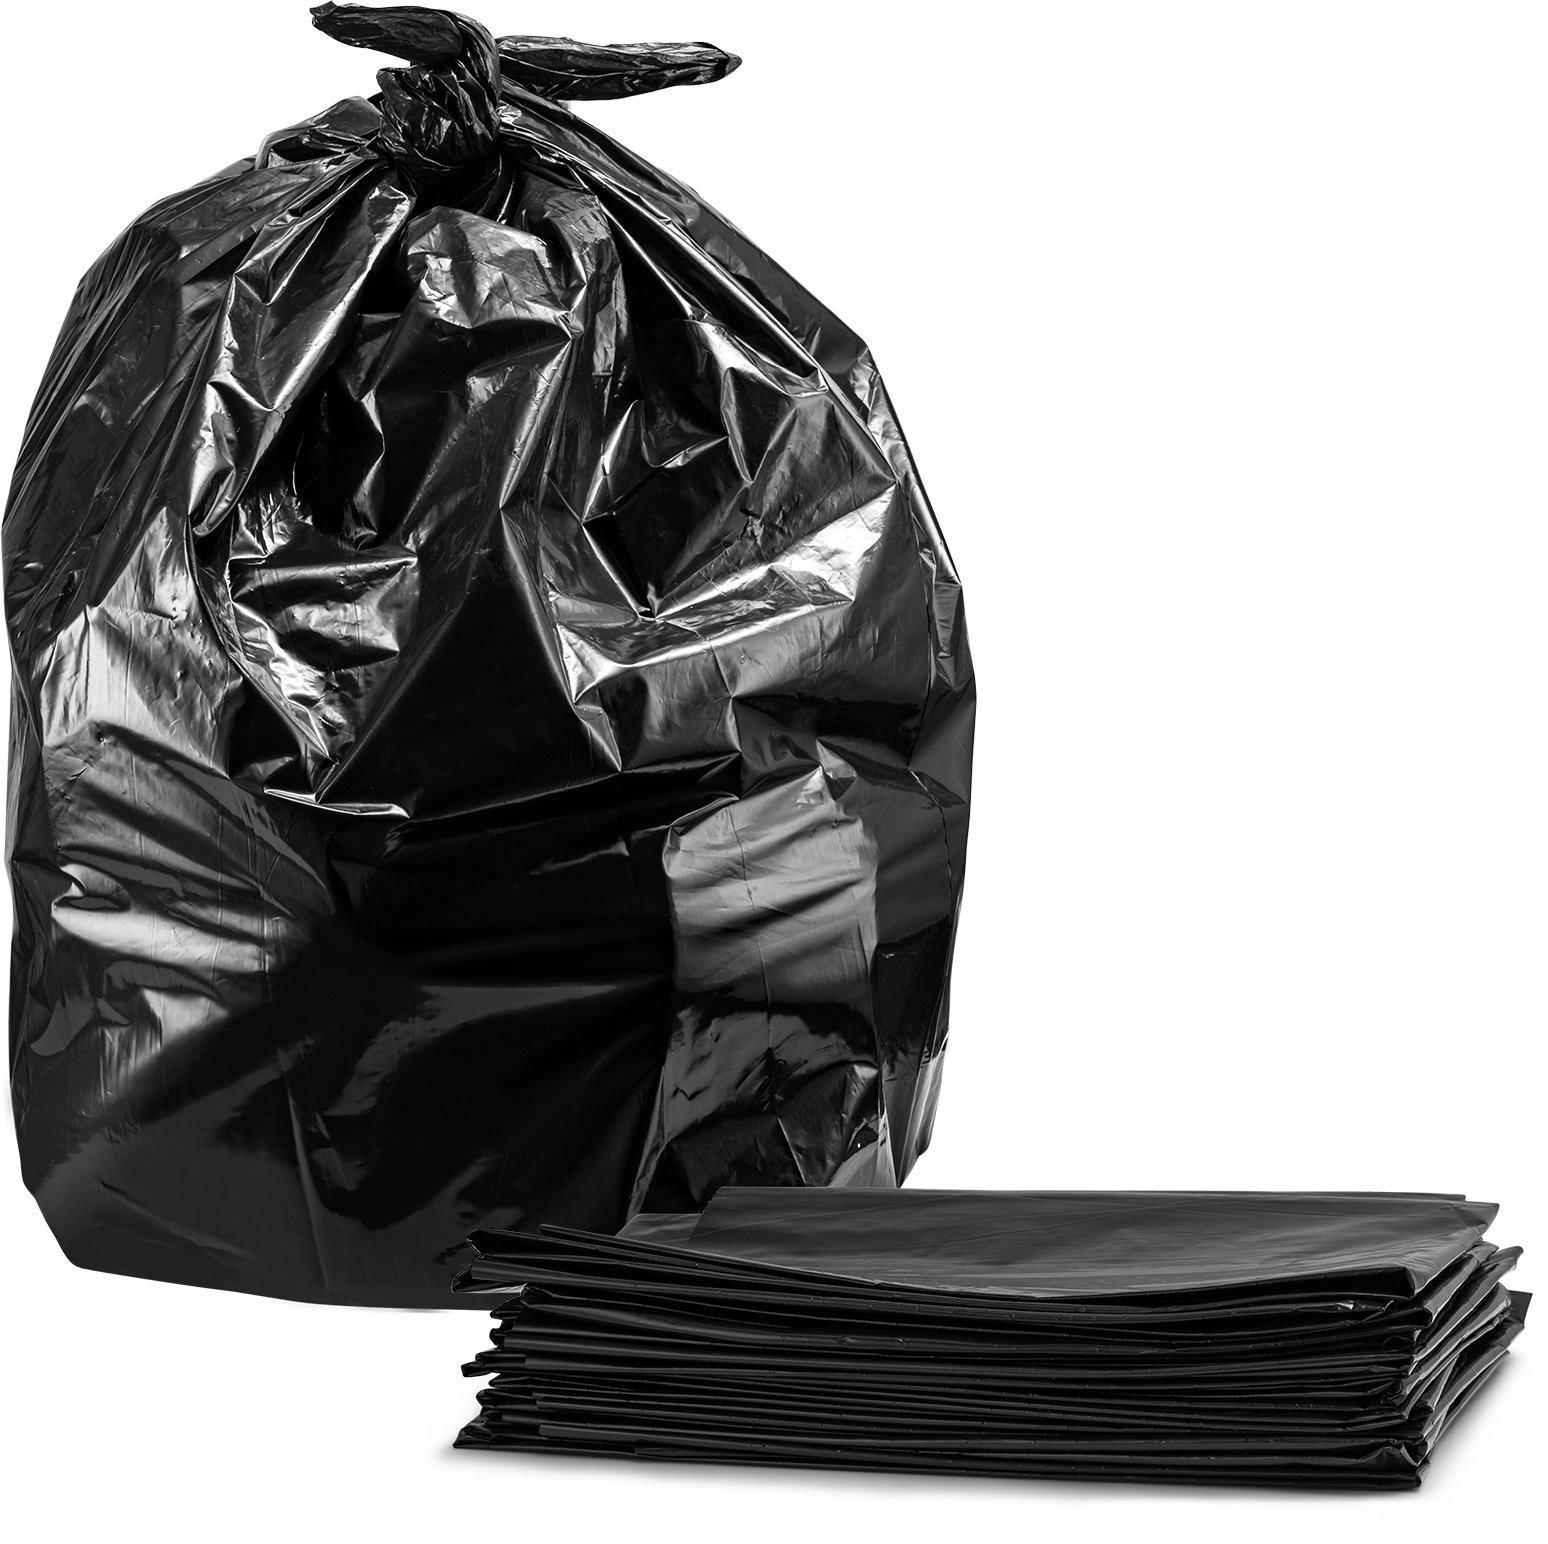 40-45 Gallon Trash Bags, Large Black Heavy Duty Garbage Bags, 40''Wx46''H, 1.5 Mil, 100/Count. By Tasker